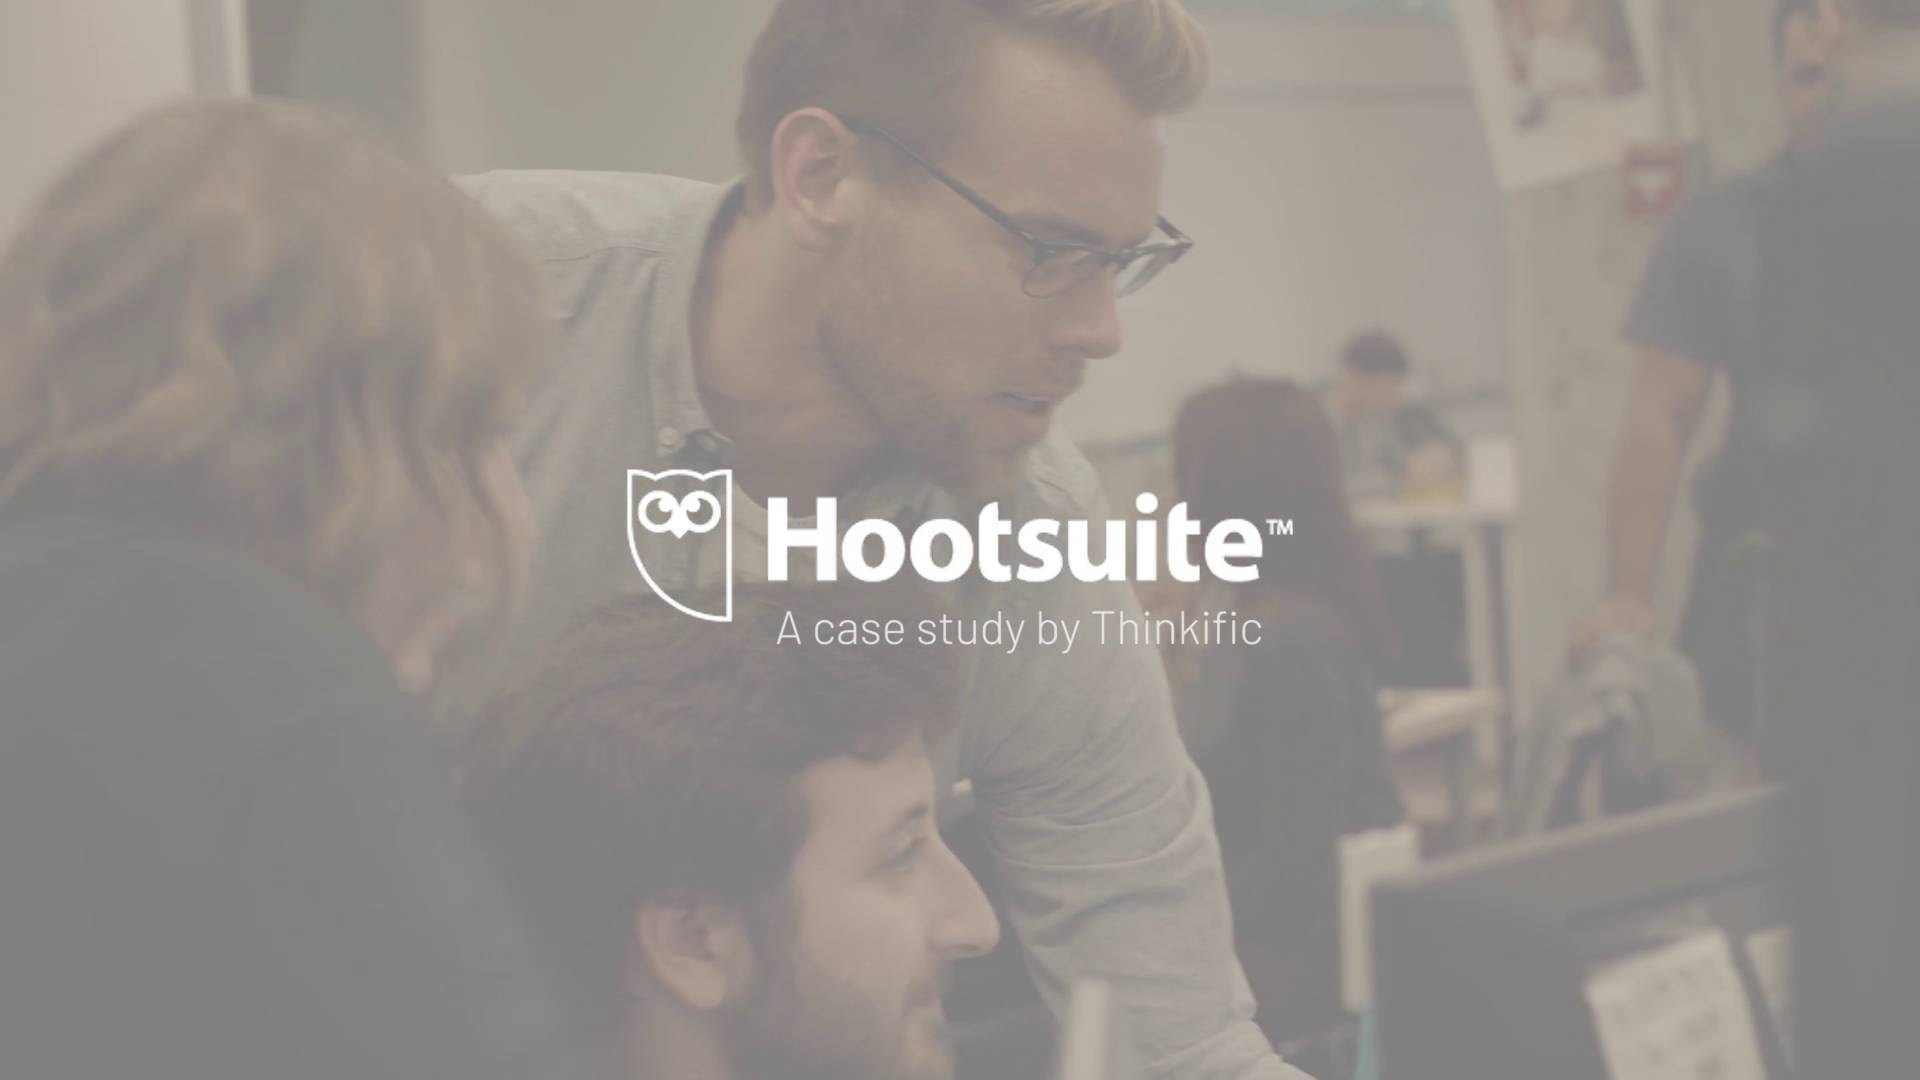 How Hootsuite uses Thinkific to create free online courses